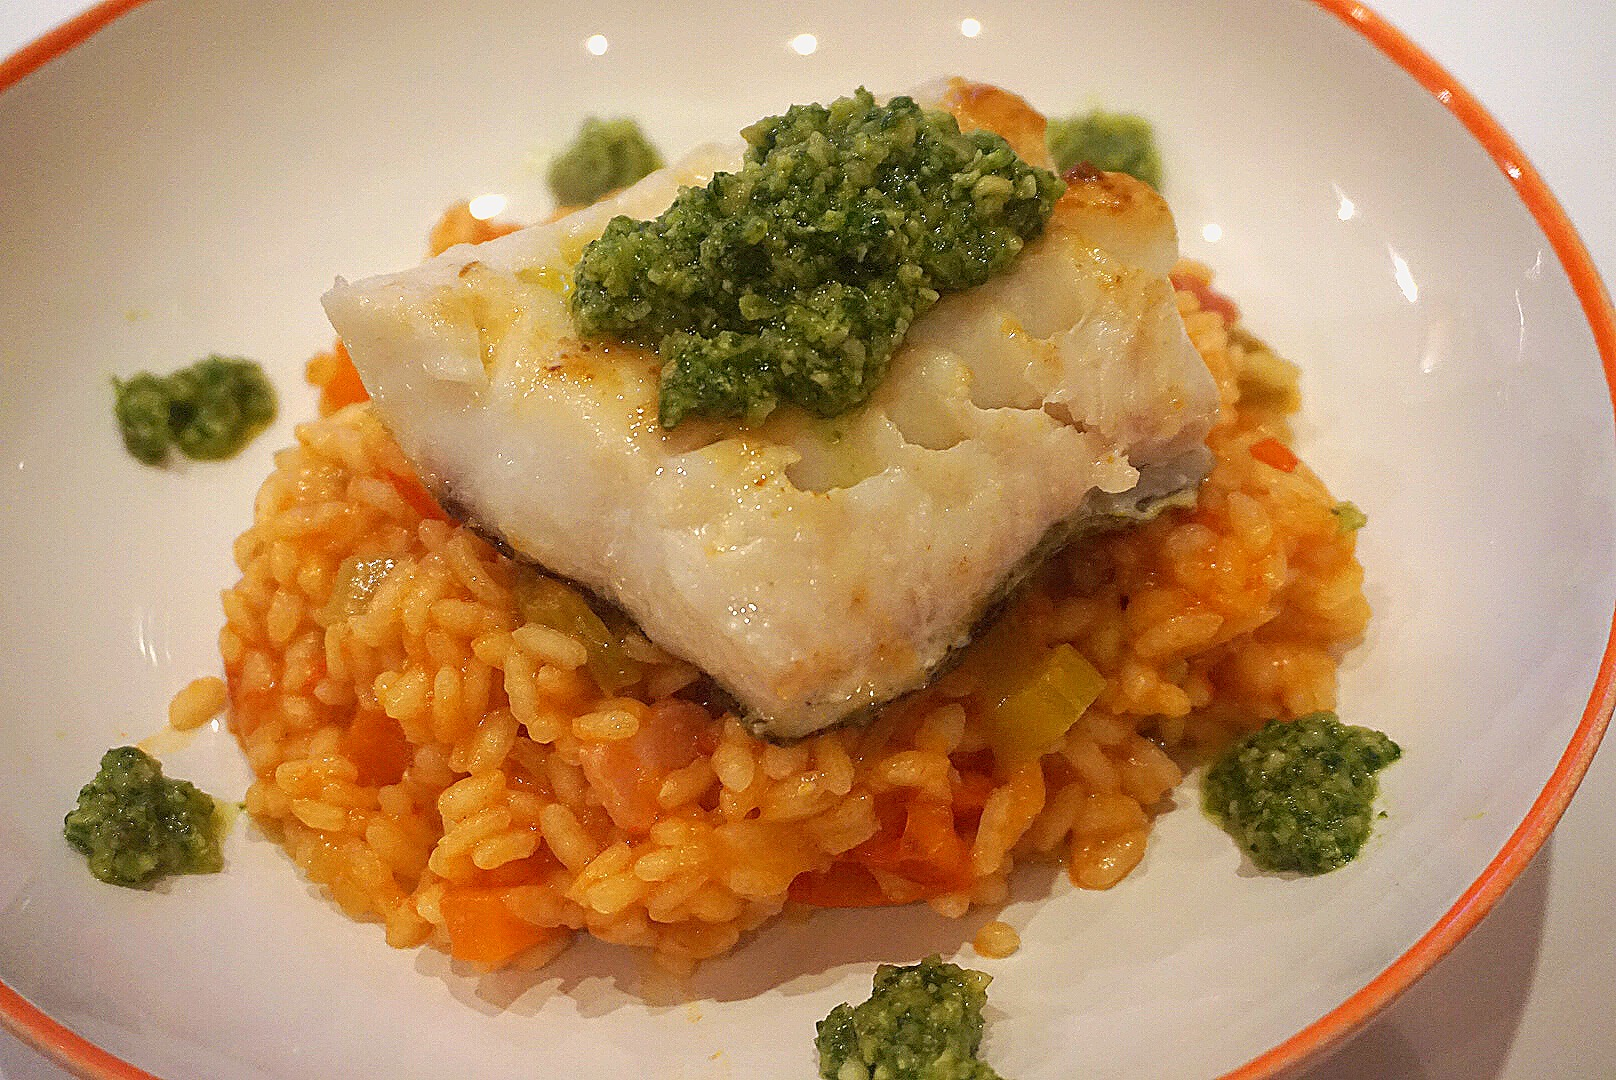 Pan fried cod and cherry tomato risotto the tiny italian for Fried cod fish recipes